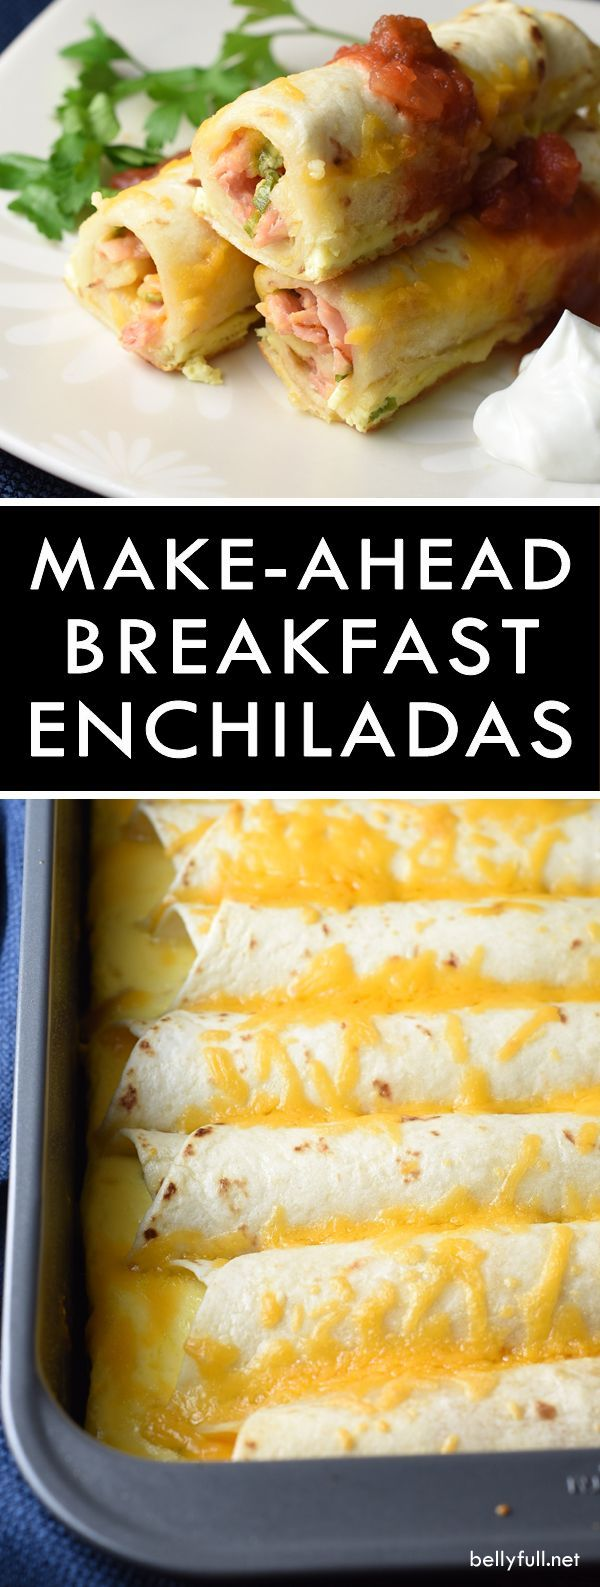 This Make-Ahead Breakfast Enchiladas recipe is a super easy and delicious casserole that can be made the night before and baked the next day! (Cheese Making Breakfast Casserole)